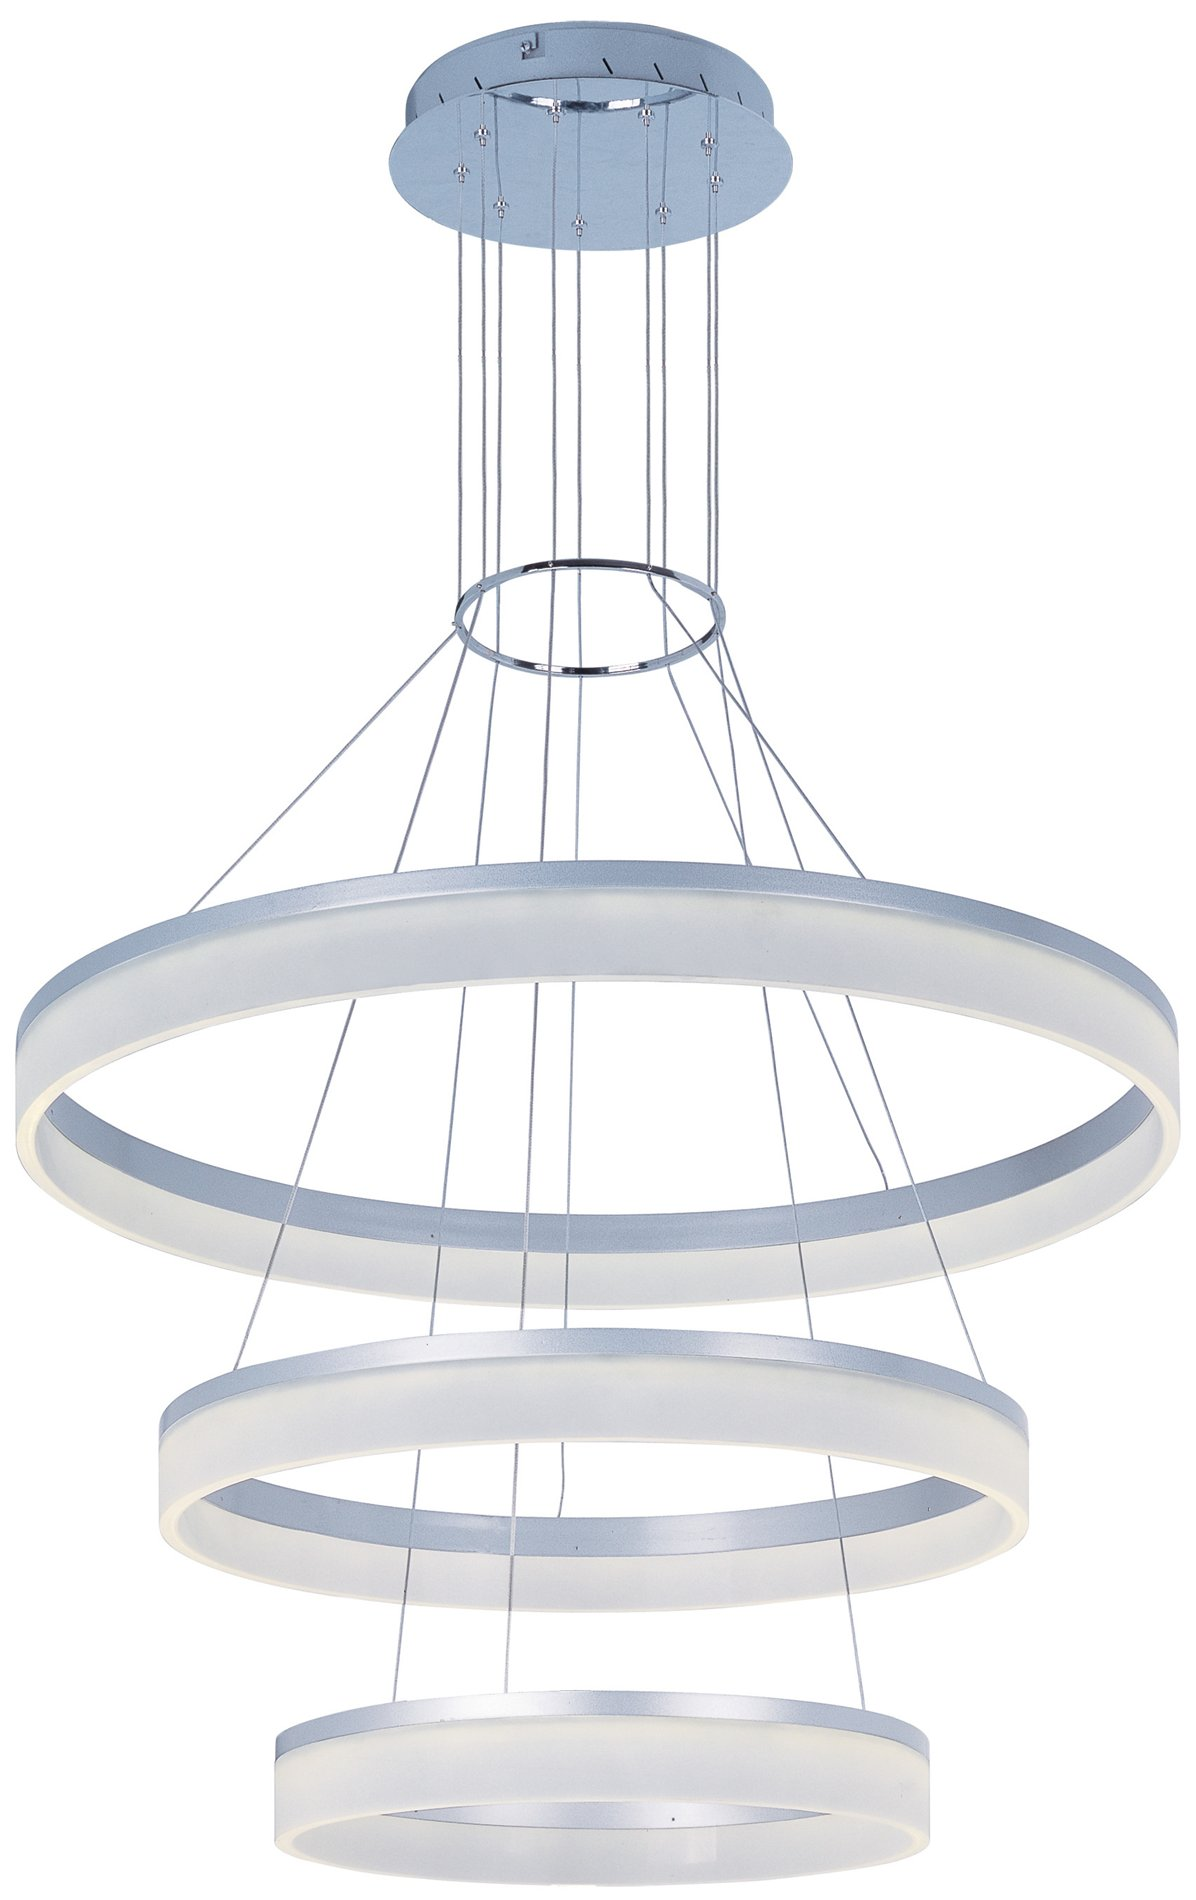 e22456 11ms saturn led contemporary 3 tier pendant light e22456 11ms